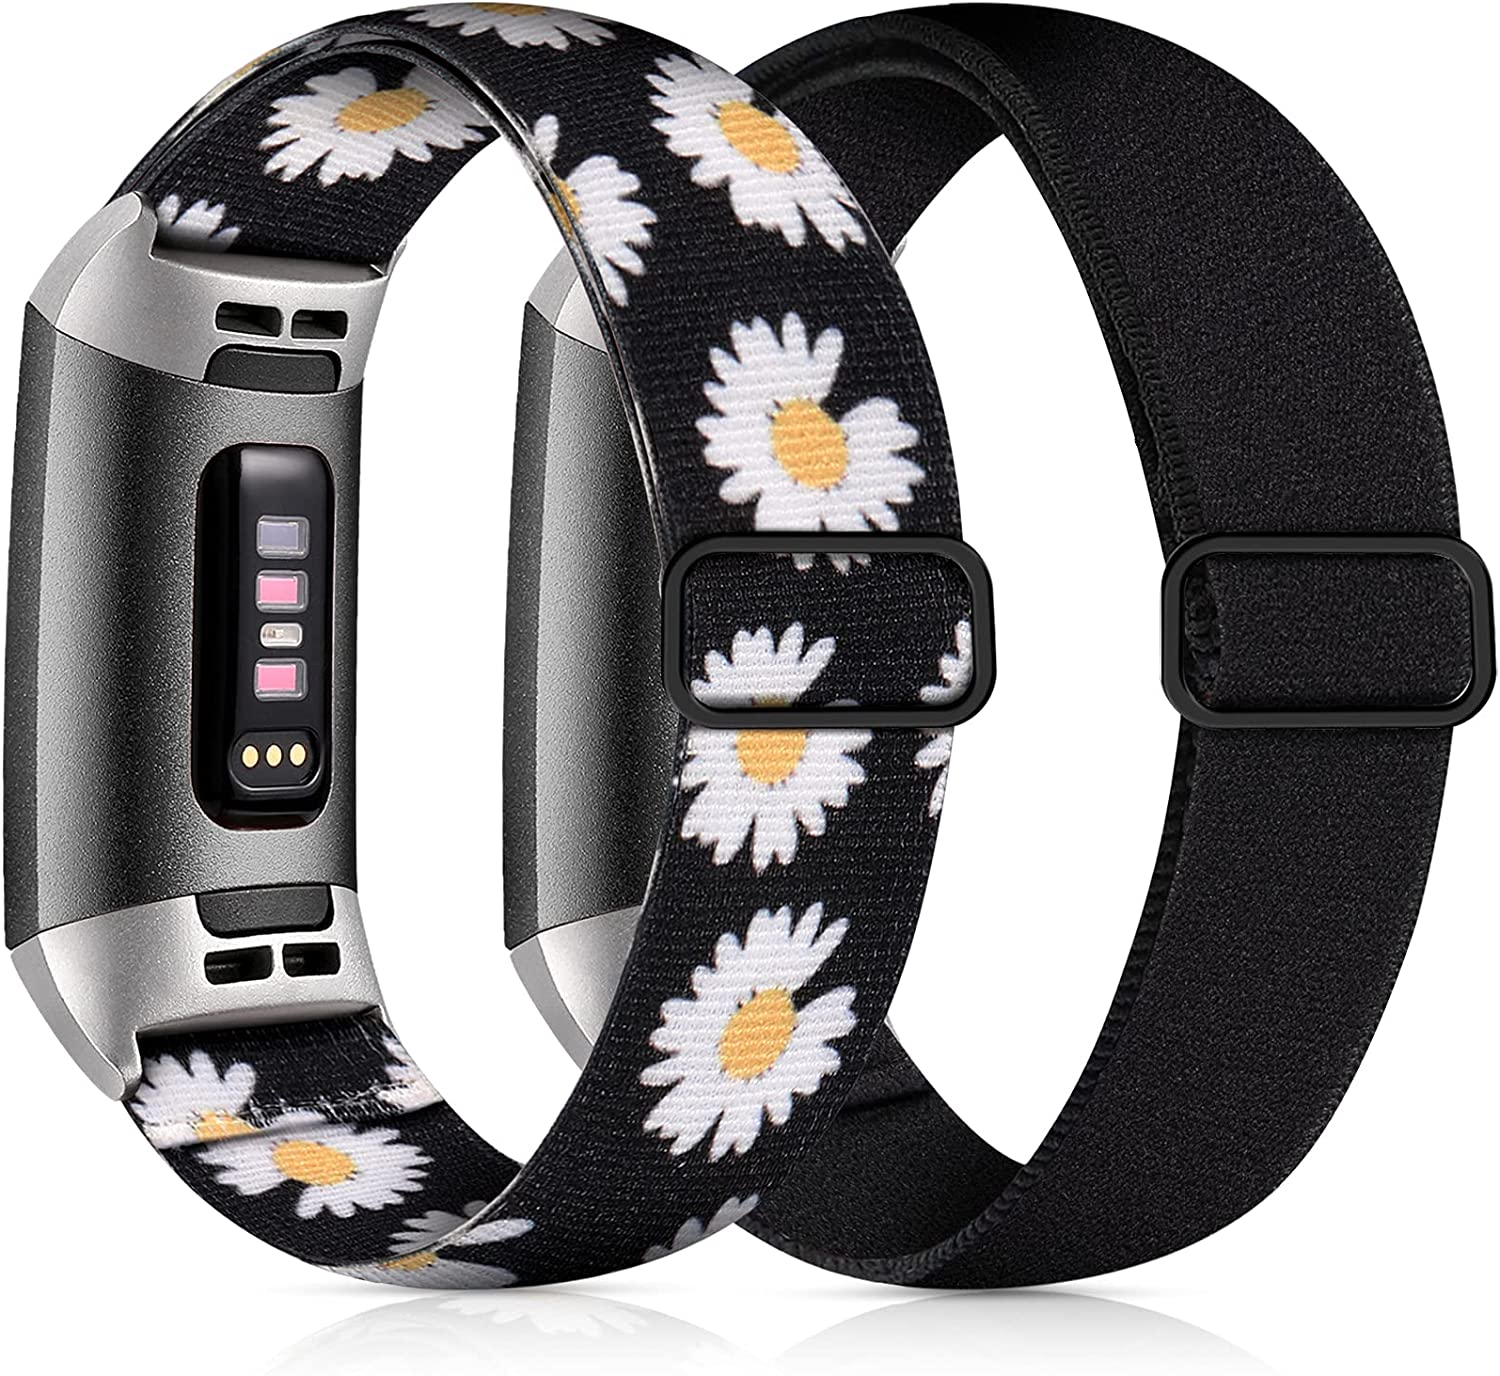 GEAK 2 Pack Compatible for Fitbit Charge 3 Bands/Fitbit Charge 4 Bands for Women, Adjustable Stretch Breathable Nylon Replacement Strap for Fitbit Charge 4/SE/Charge 3 Women Men Black/White Daisy